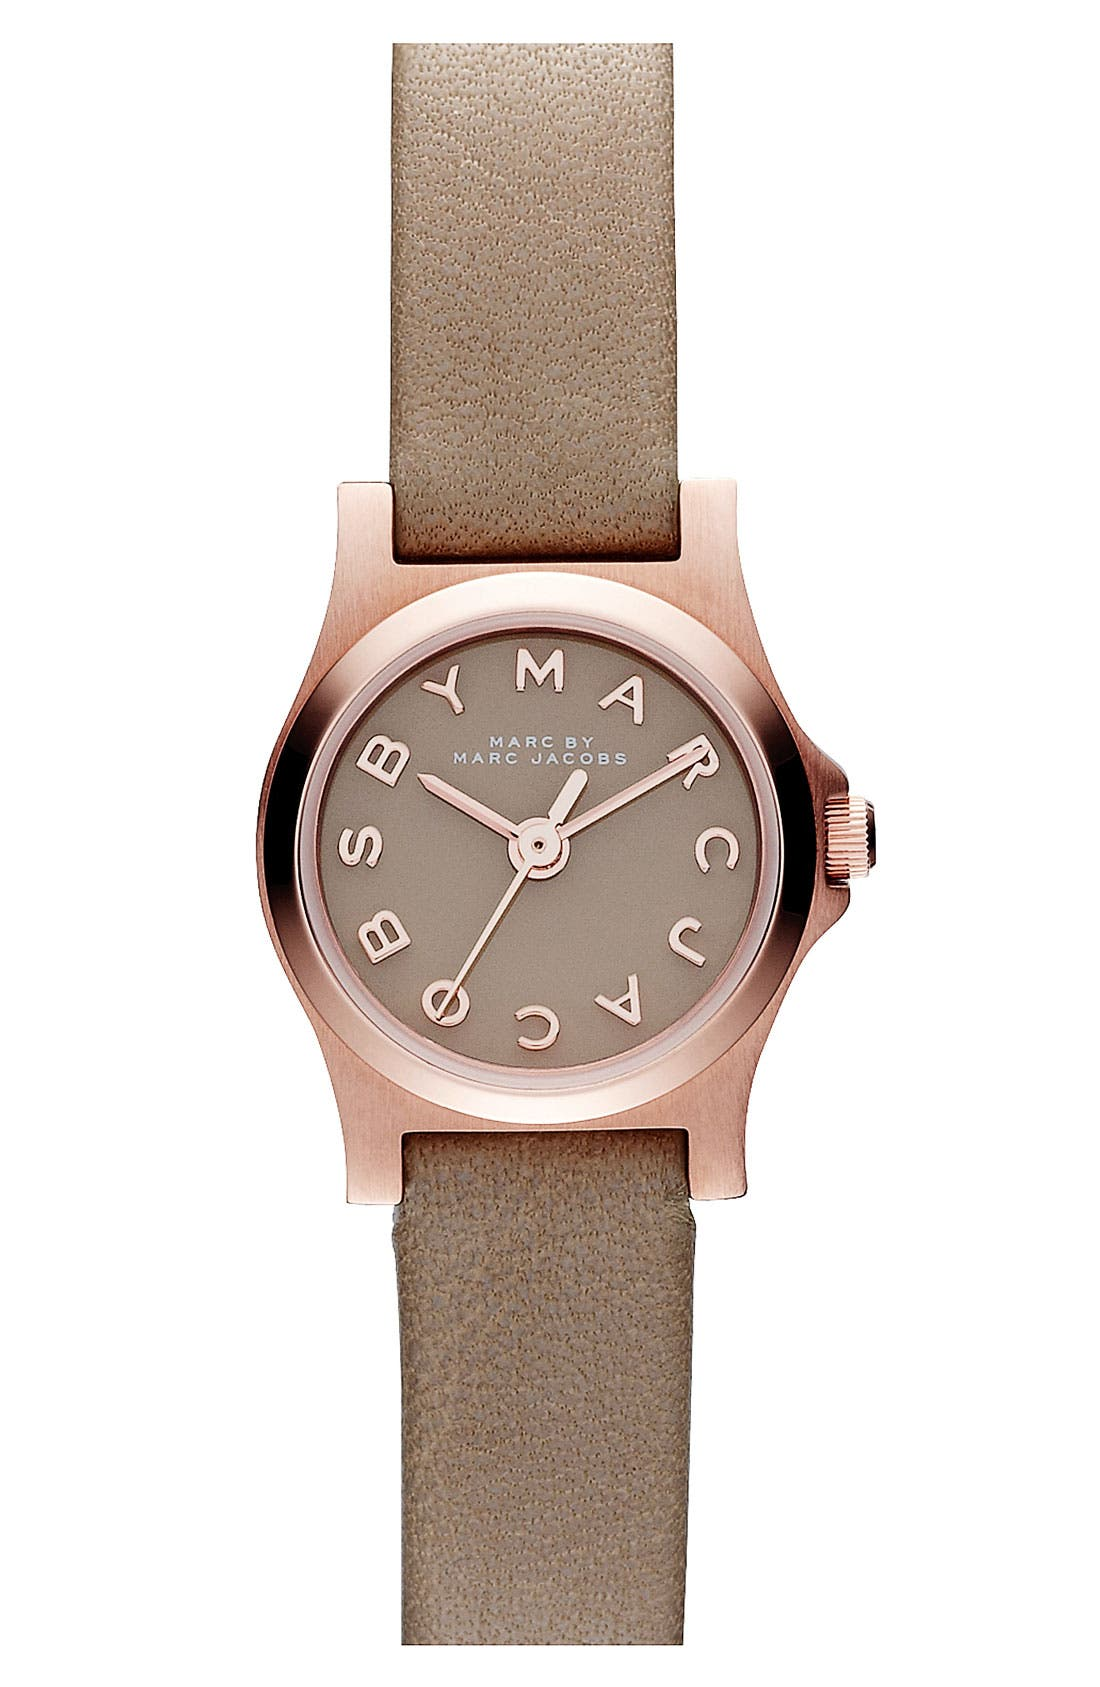 Main Image - MARC JACOBS 'Henry Dinky' Leather Strap Watch